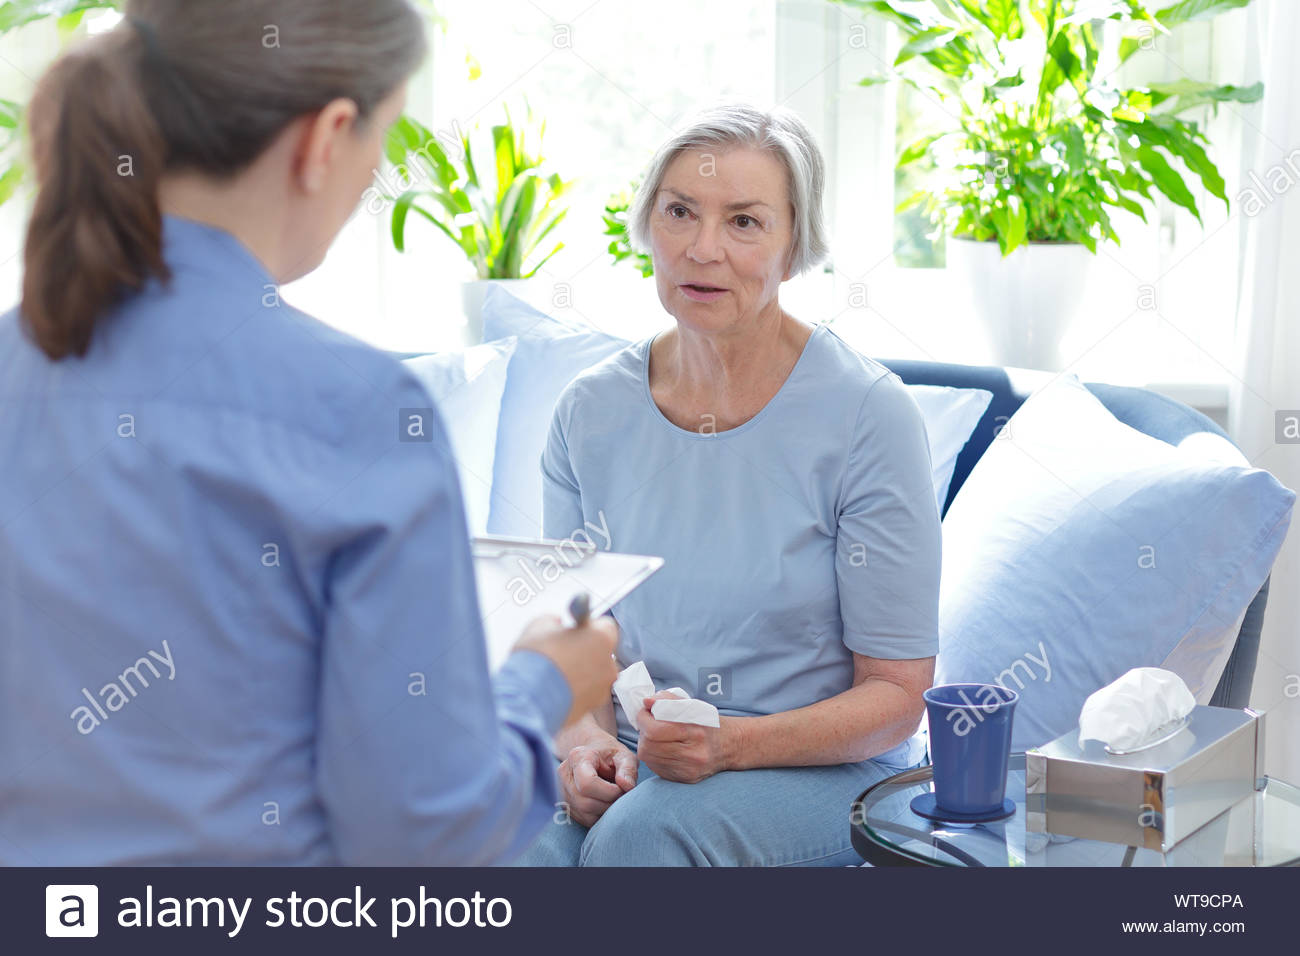 Talk therapy concept: therapist talking with her mature client about her current issues during a counseling session. Stock Photo